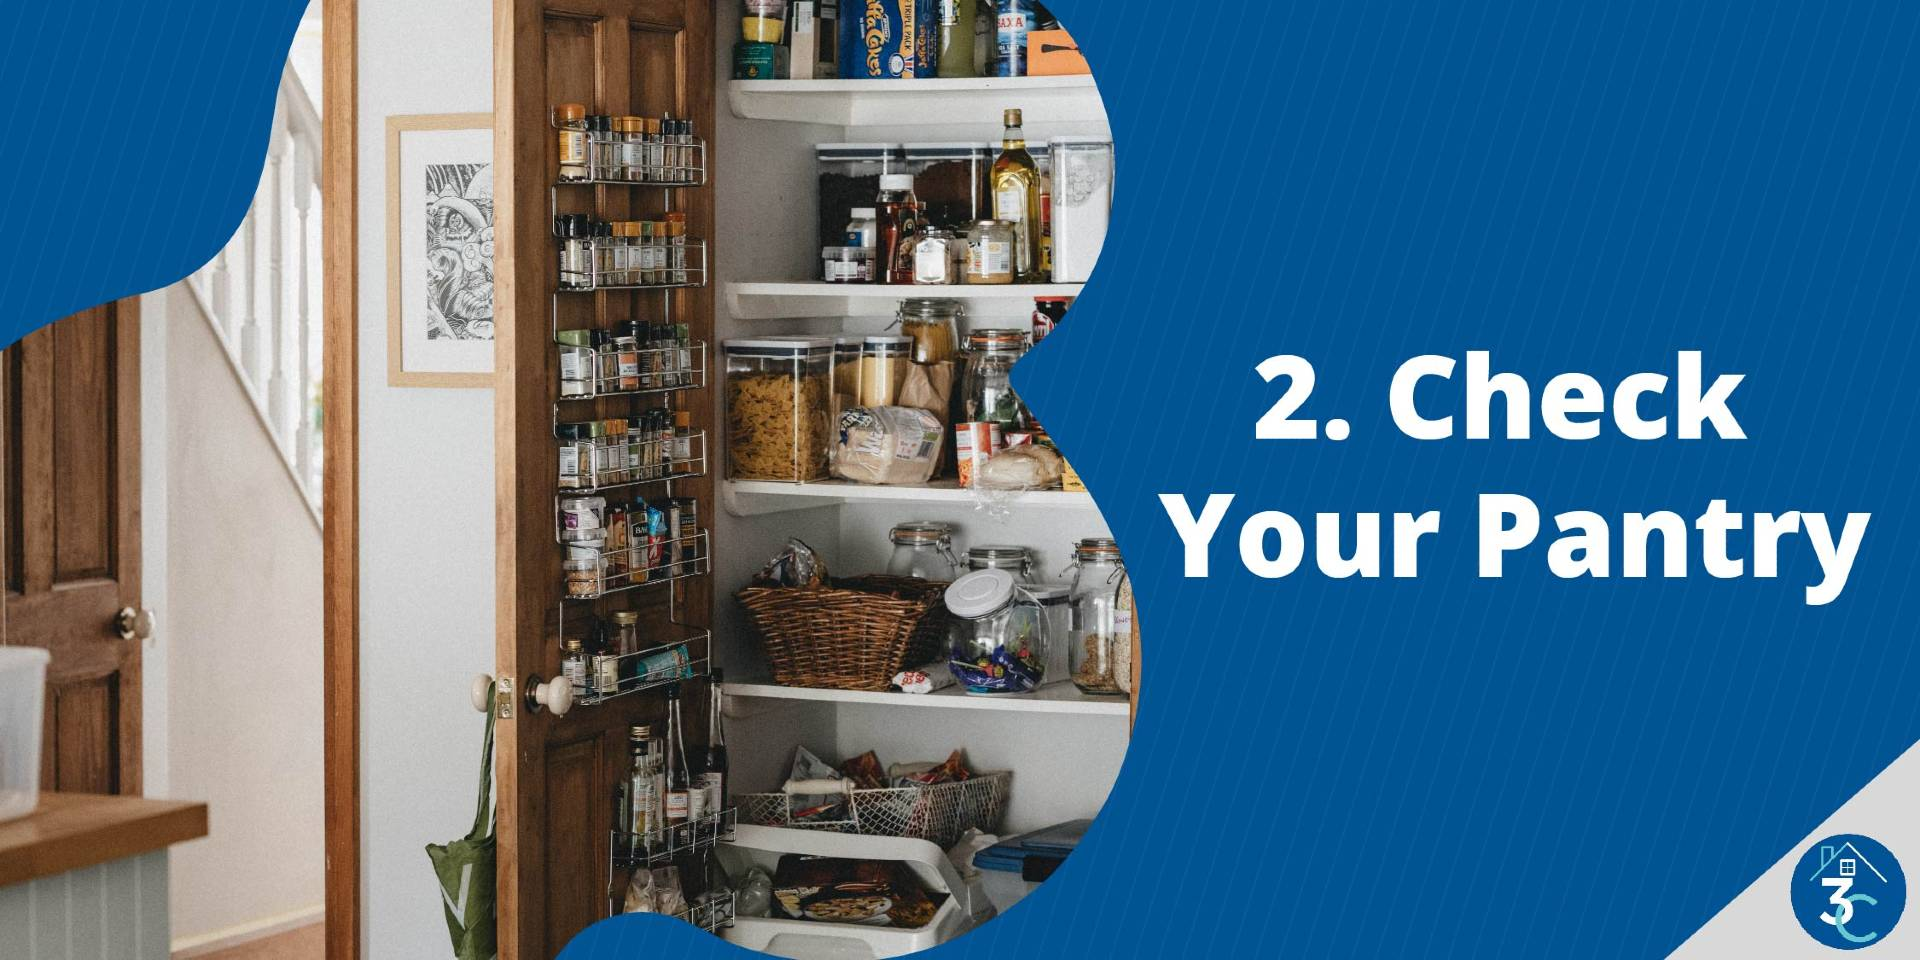 Check Your Pantry